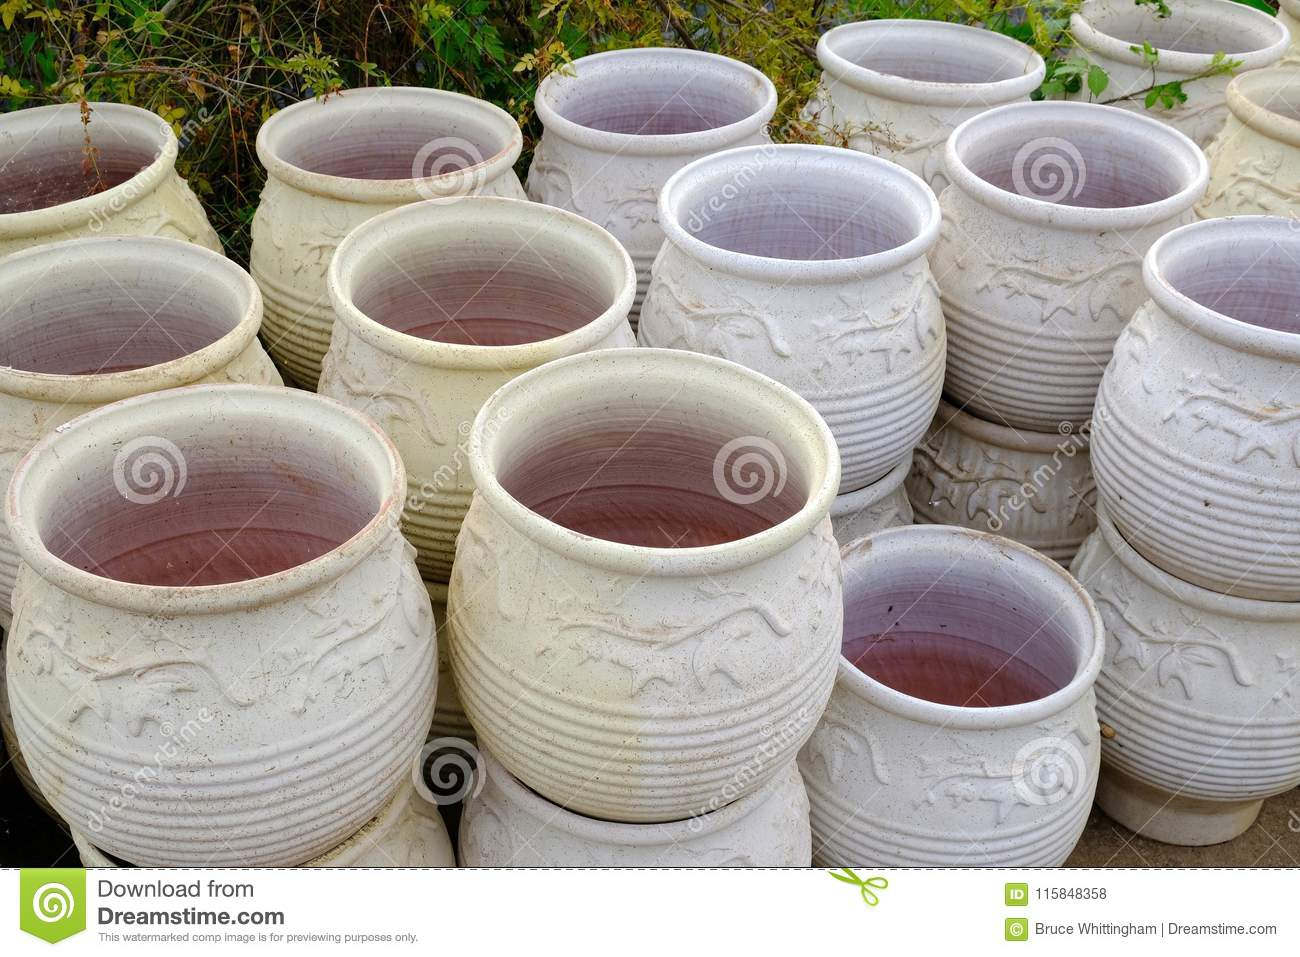 Download Large Terracotta Garden Pots Or Urns Stock Photo   Image Of  Ceramic, Urns: